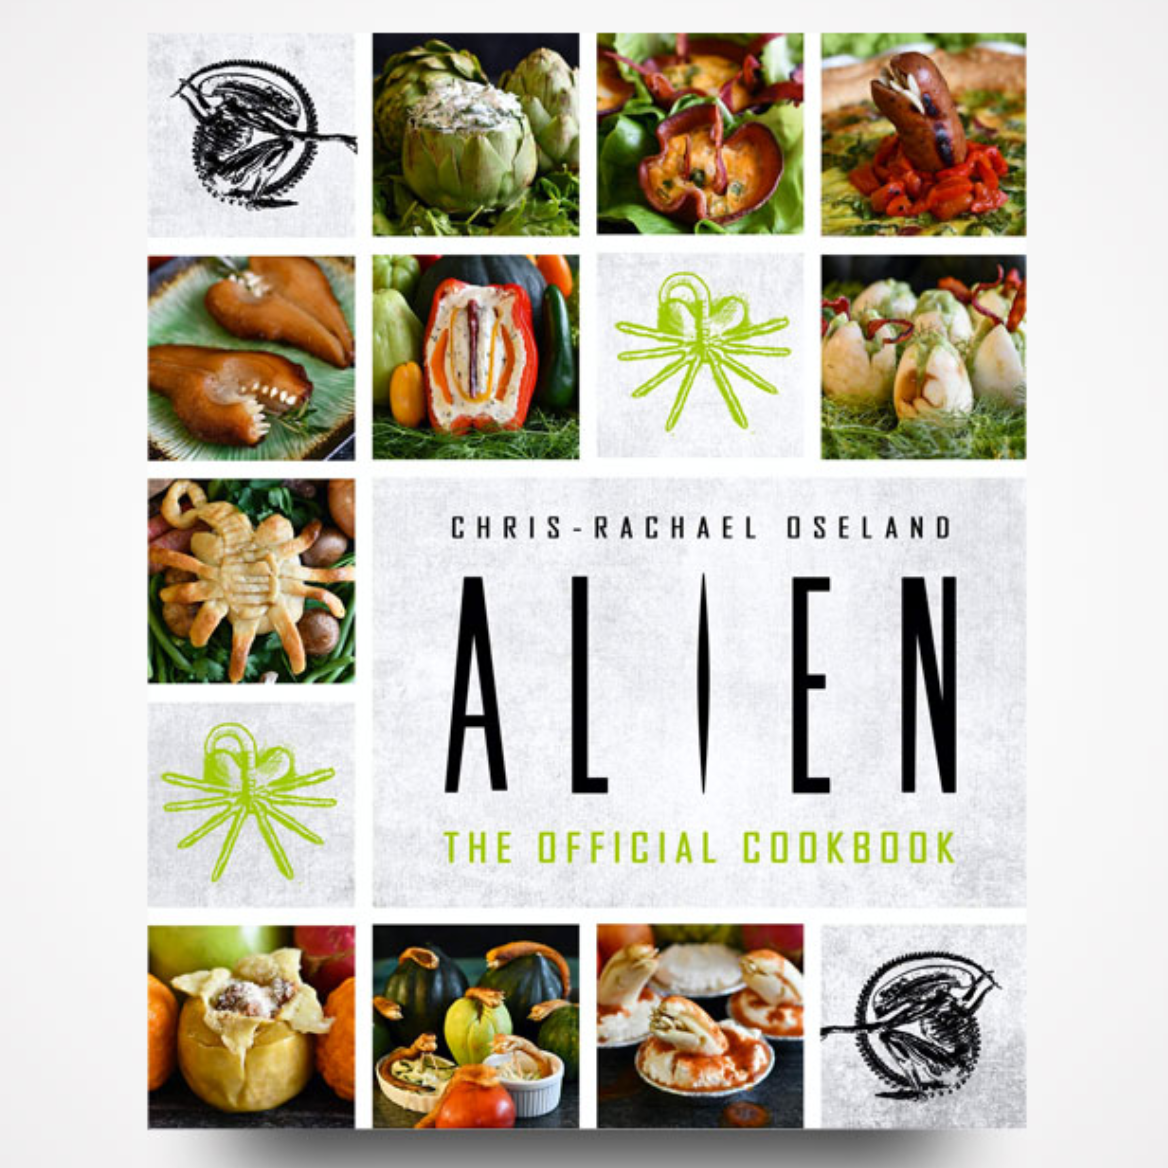 The Official Cookbook